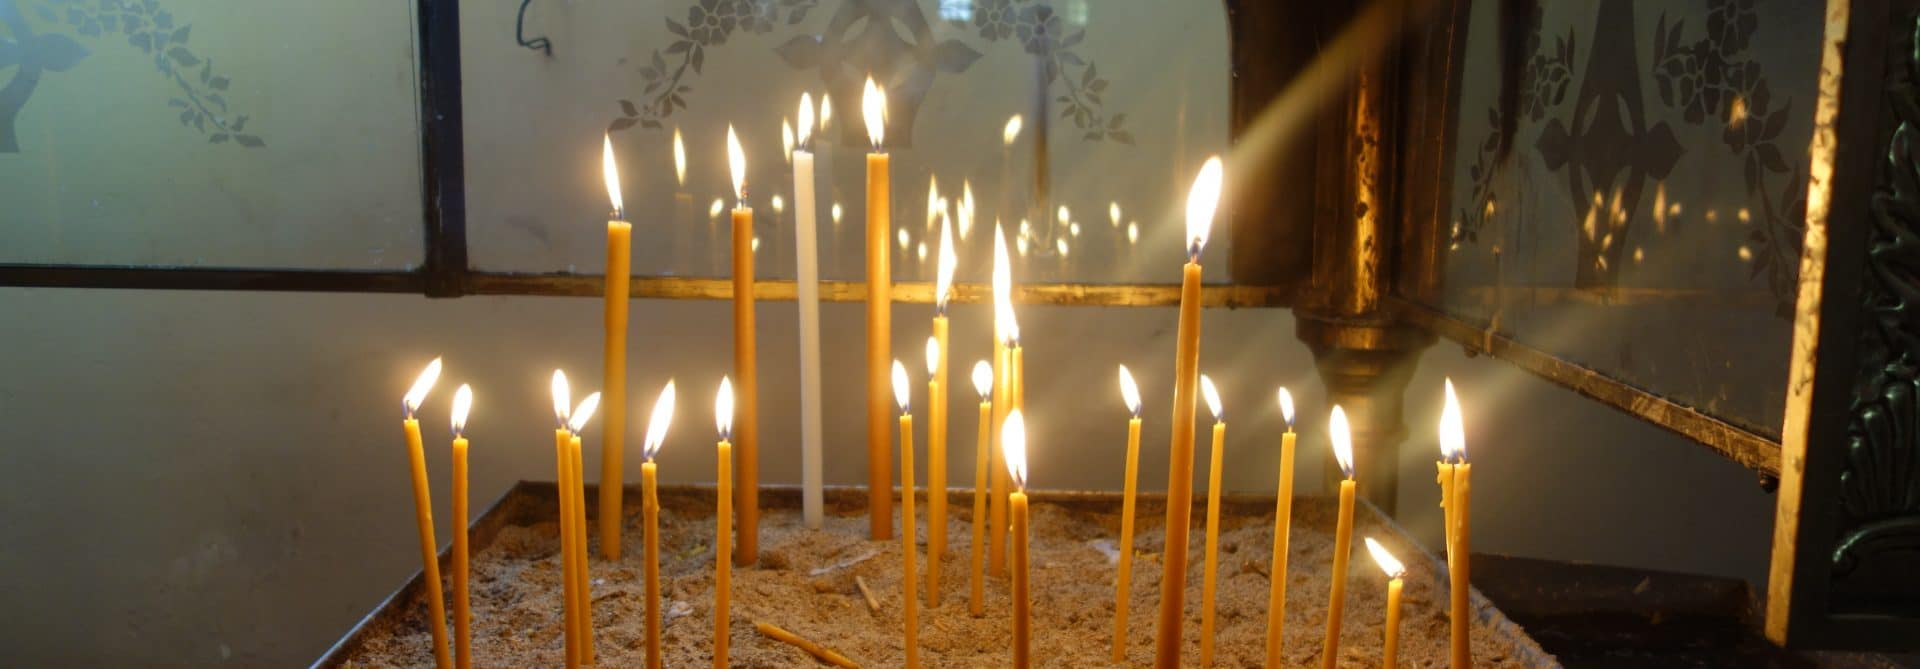 Rila candles Bulgaria